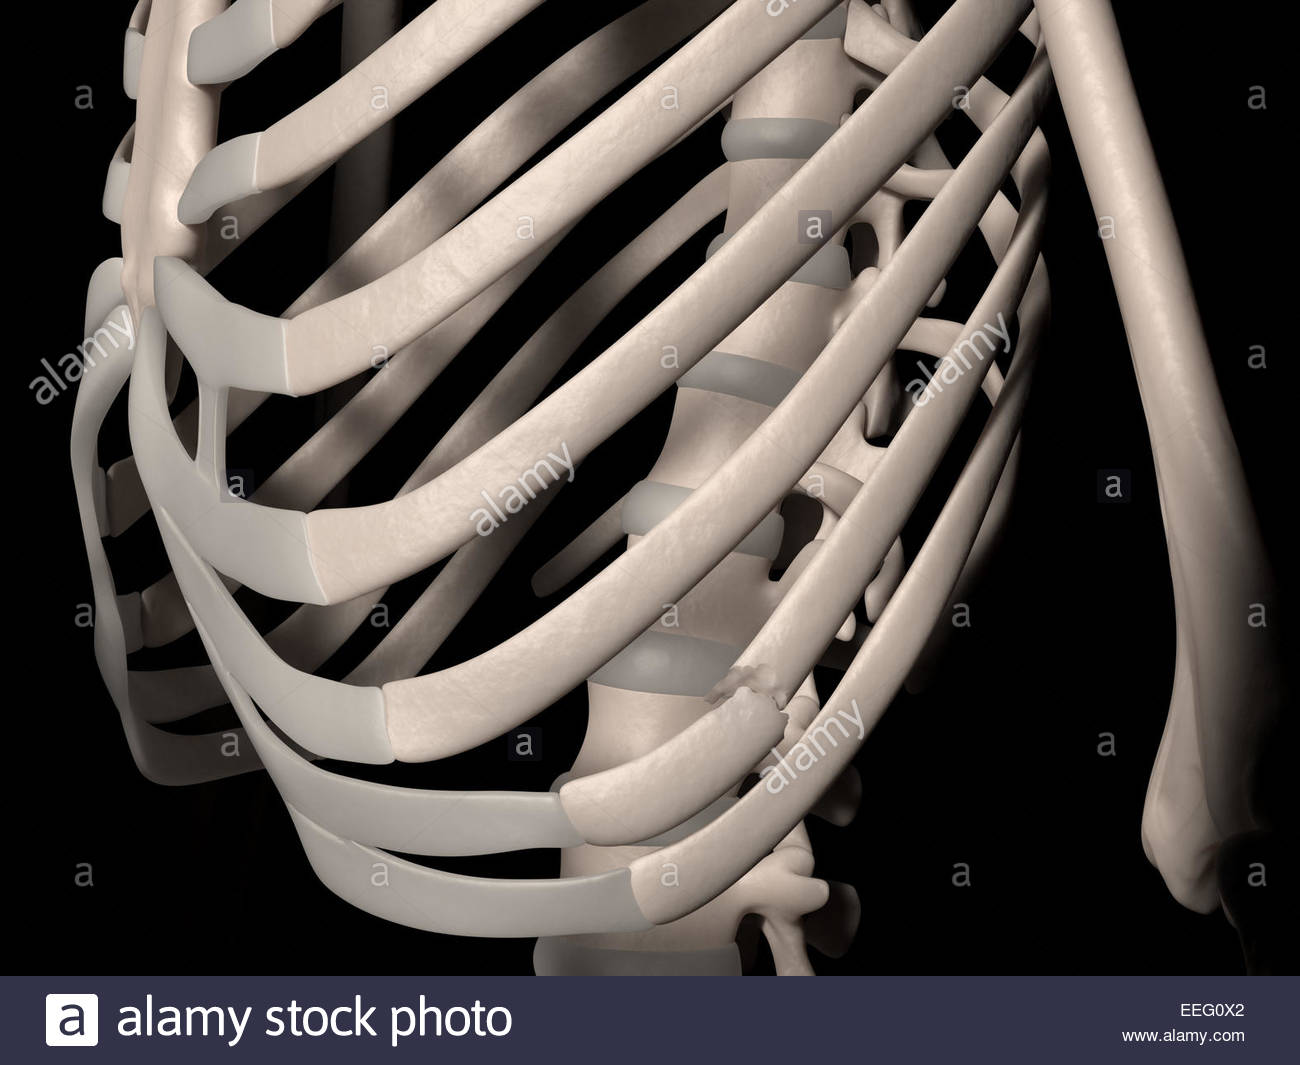 Digital medical illustration depicting a fracture of 9th rib (false rib, costa spuria). Front perspective view. - Stock Image